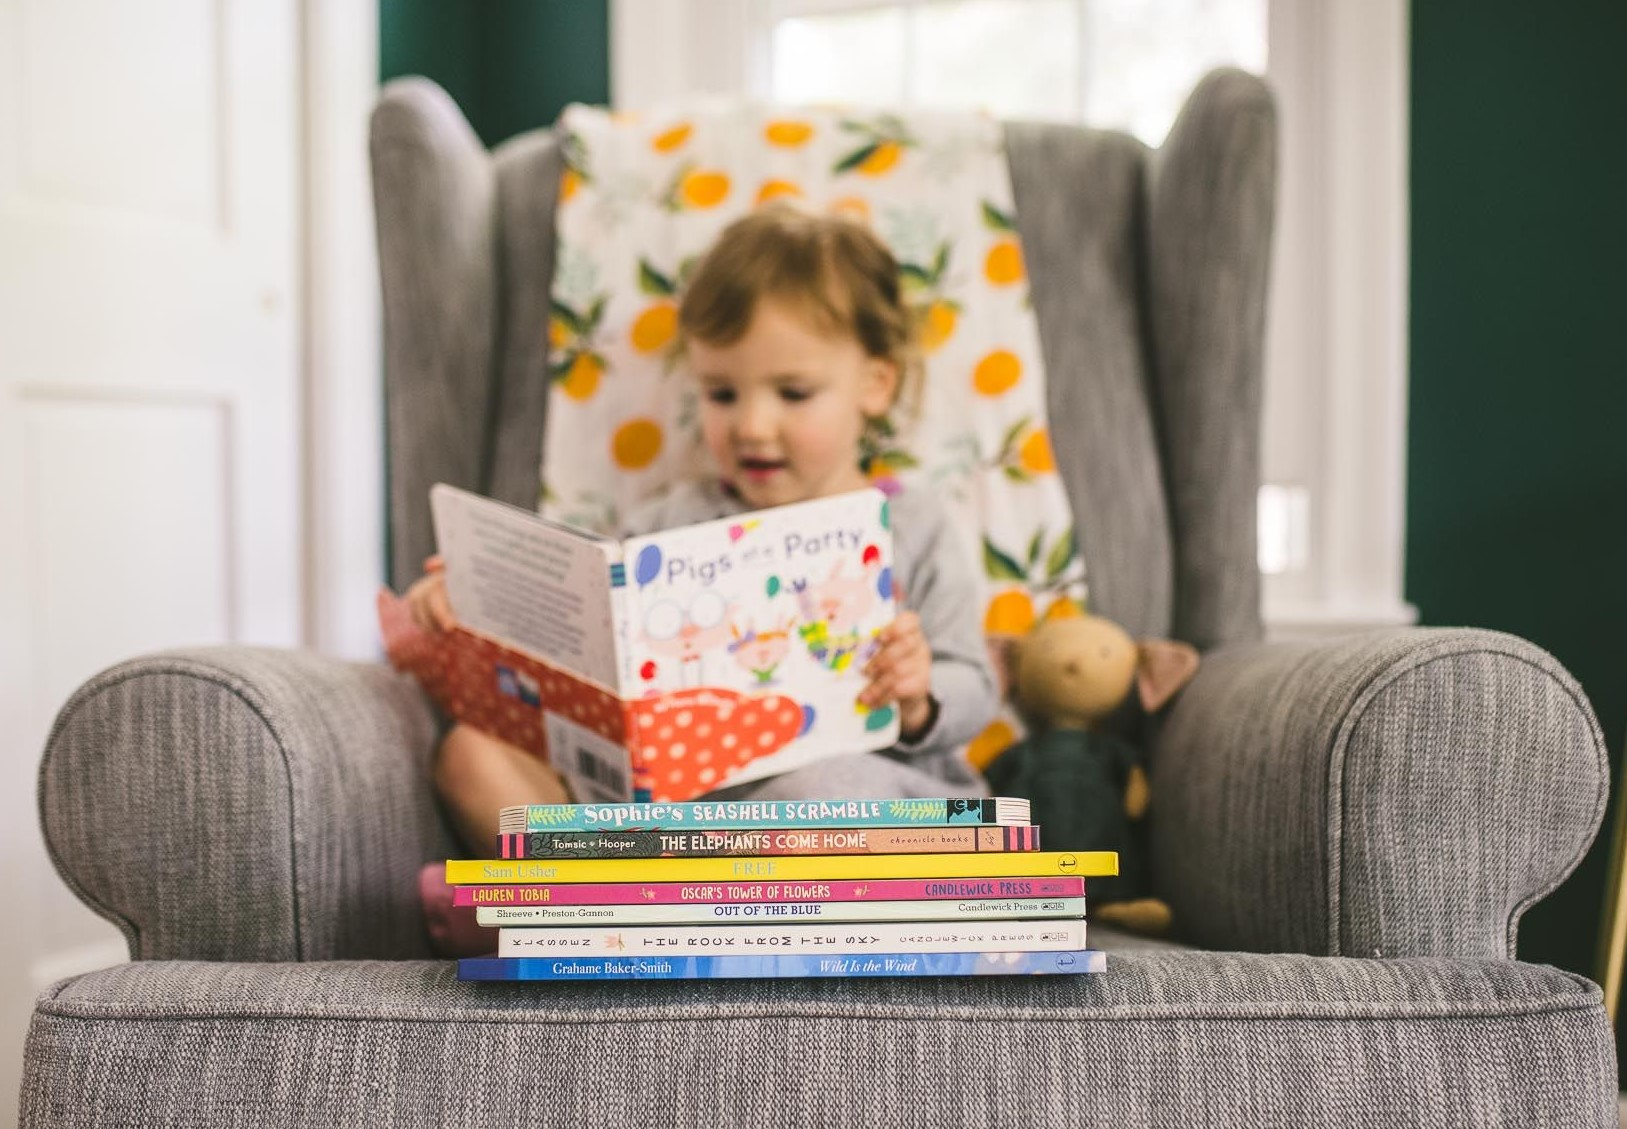 Pairing New Picture Books with Fun Kids' Activities and Toys